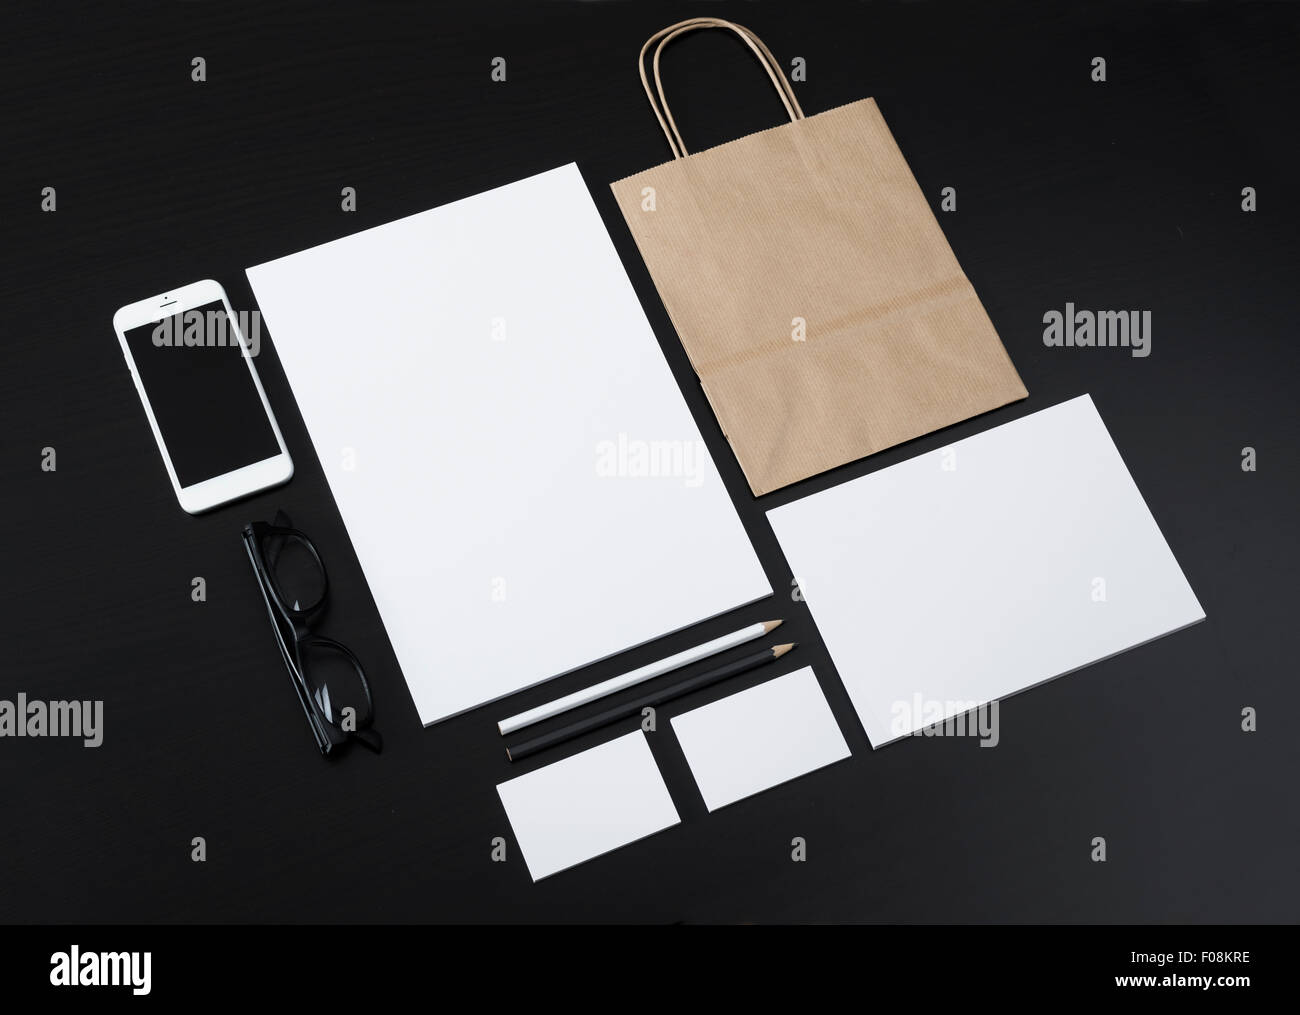 Letterhead and logo design template for shop or restaurant Stock Photo